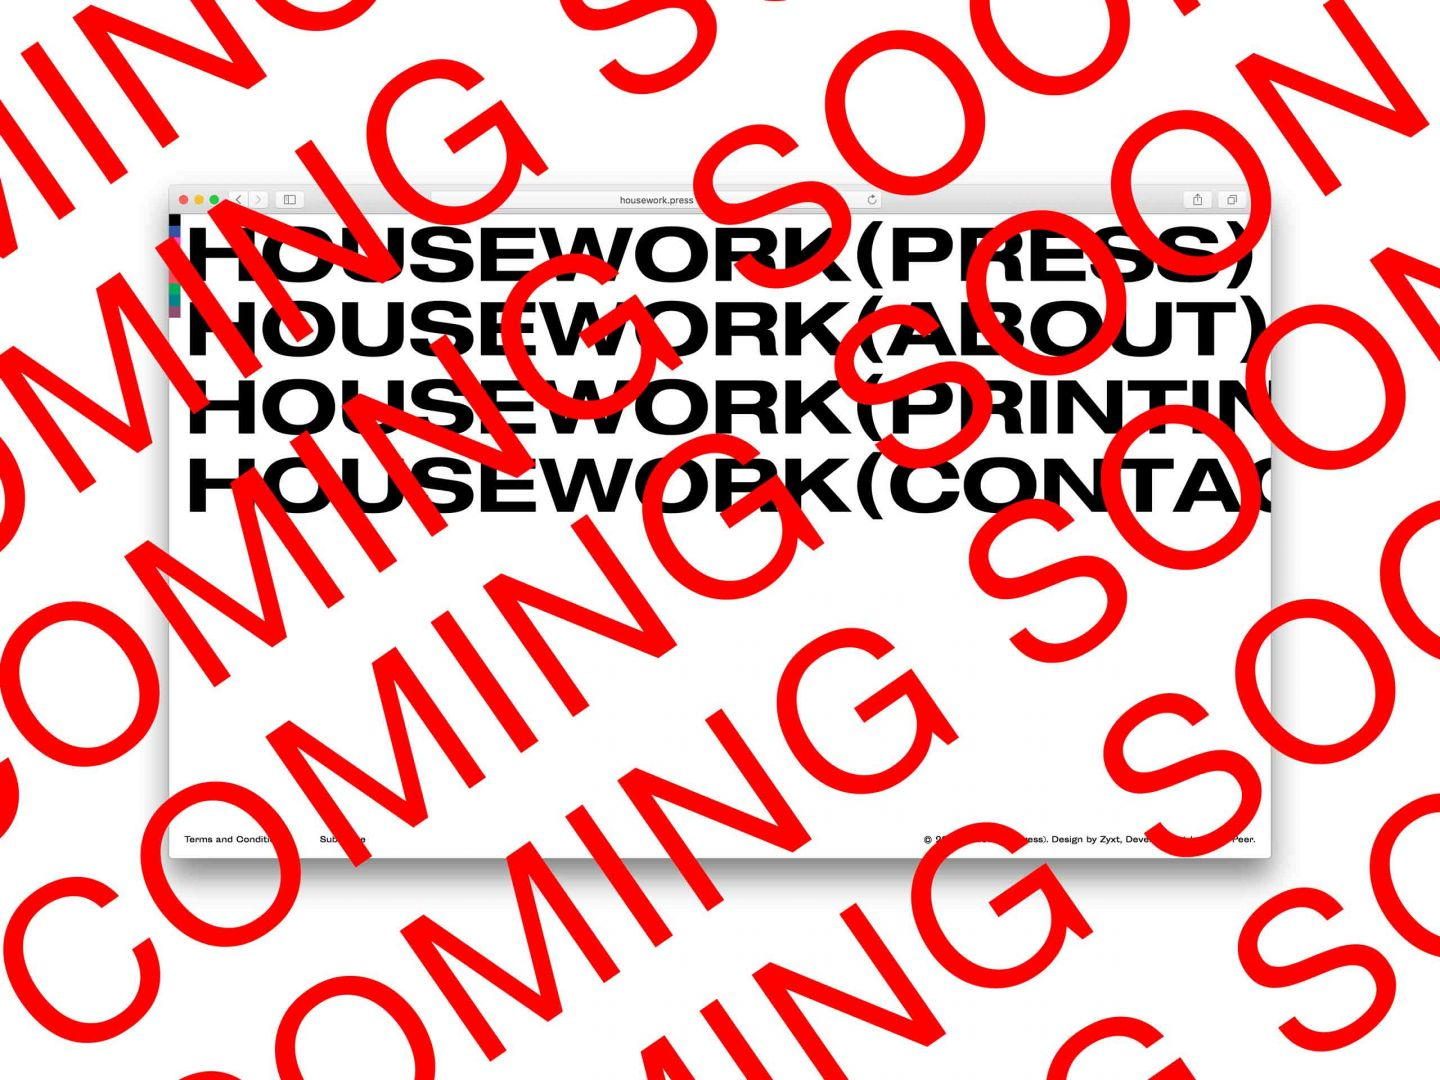 Zyxt_HouseworkPress_Identity-Design_02